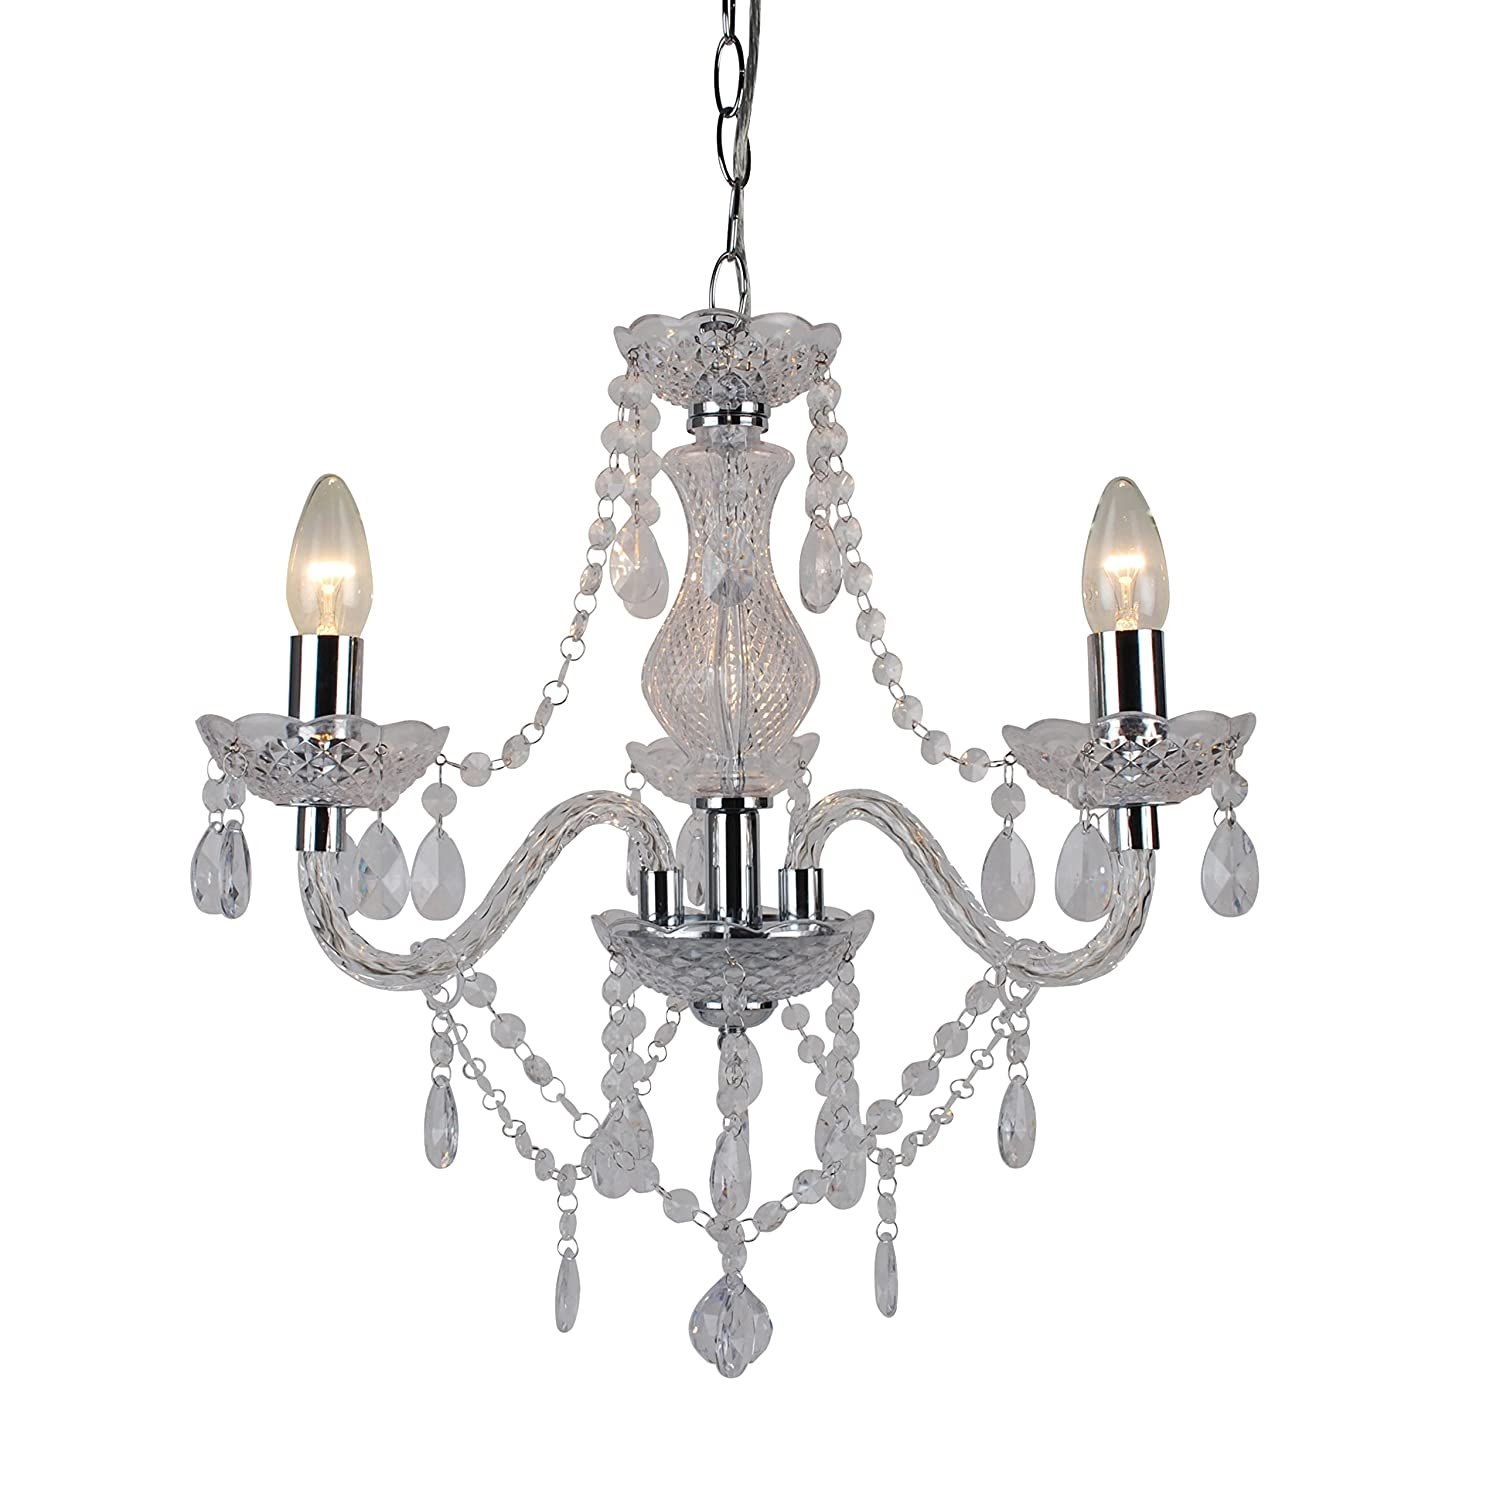 Clear And Chrome Marie Therese 3 Light Ceiling Pendant Chandelier How To Install A Dimmer Switch Apps Directories Lighting